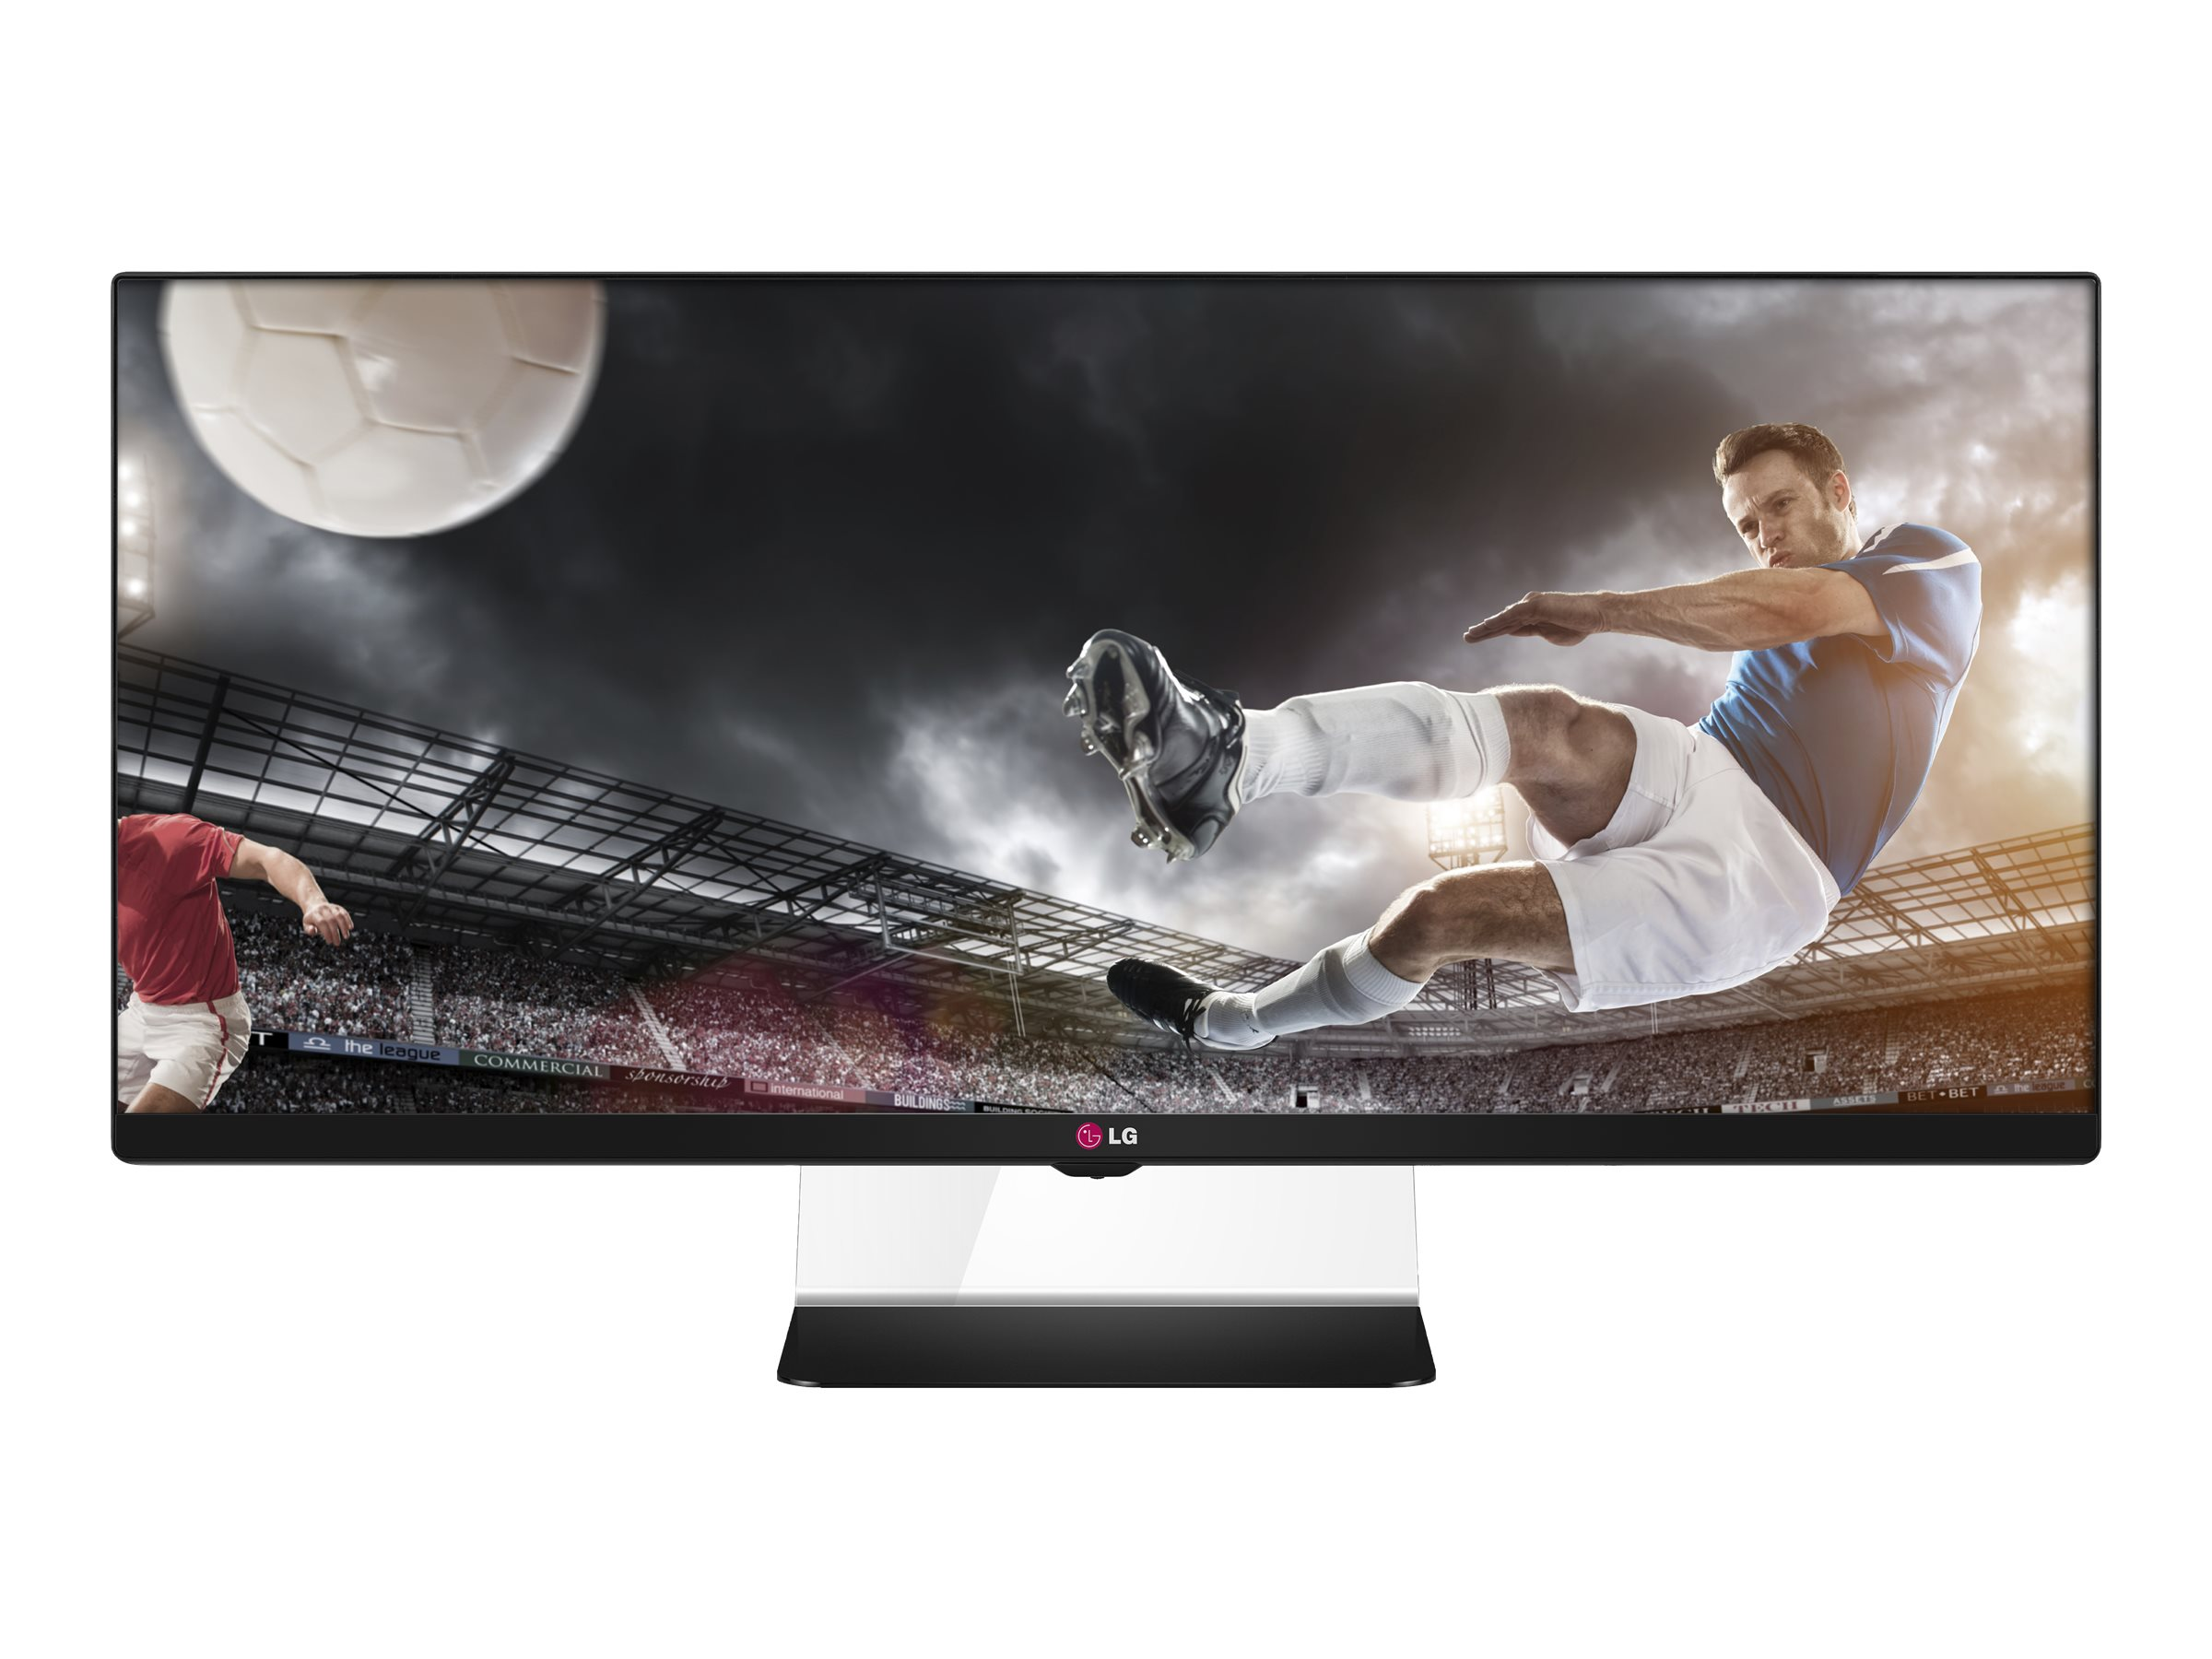 LG 34 UM64-P Full HD LED-LCD Ultrawide Monitor, Black